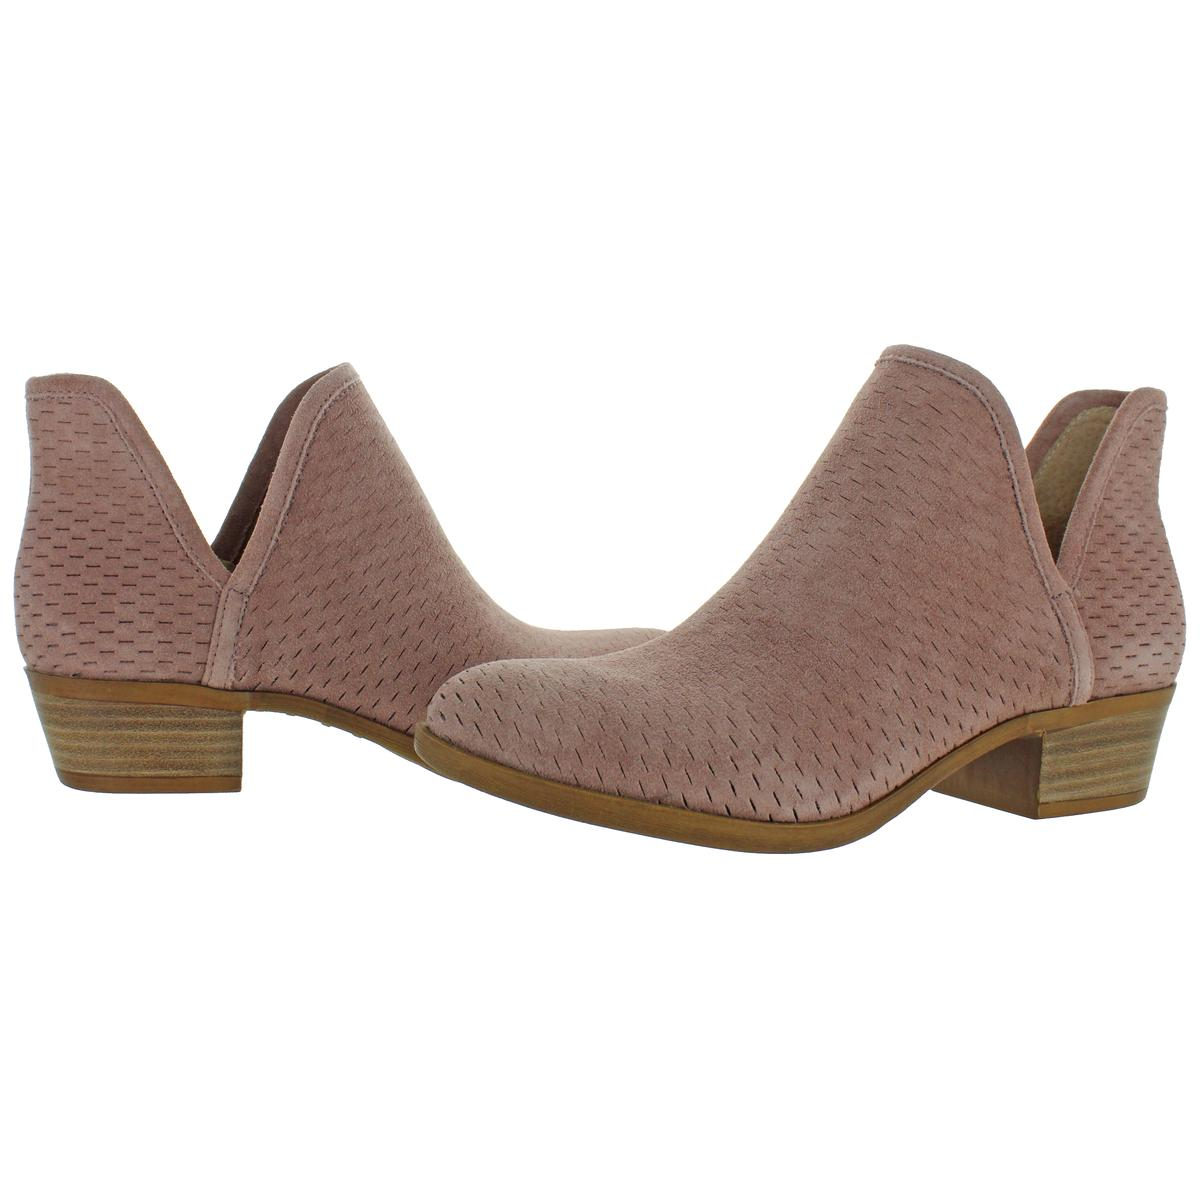 Lucky Brand Womens Baley Perforated Ankle Booties Shoes BHFO 6721